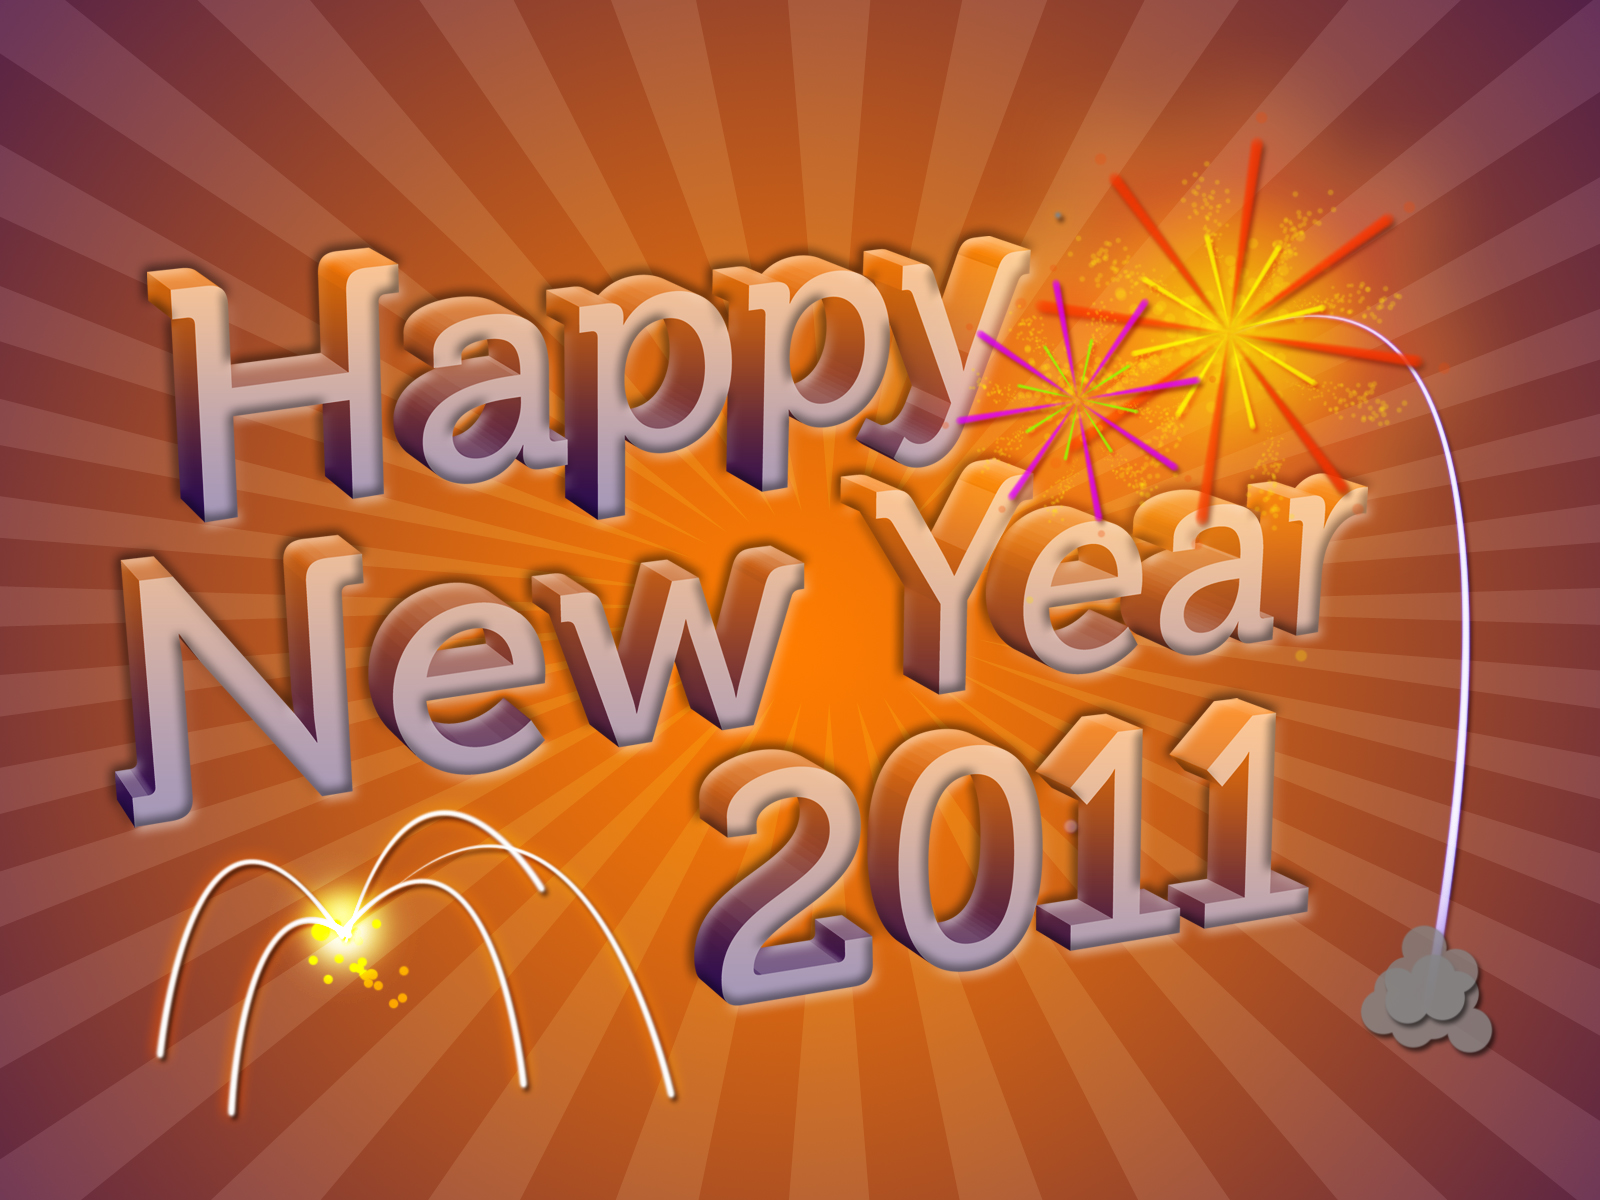 Happy New Year 2011 Wallpaper | Scott Photographics | Free ...